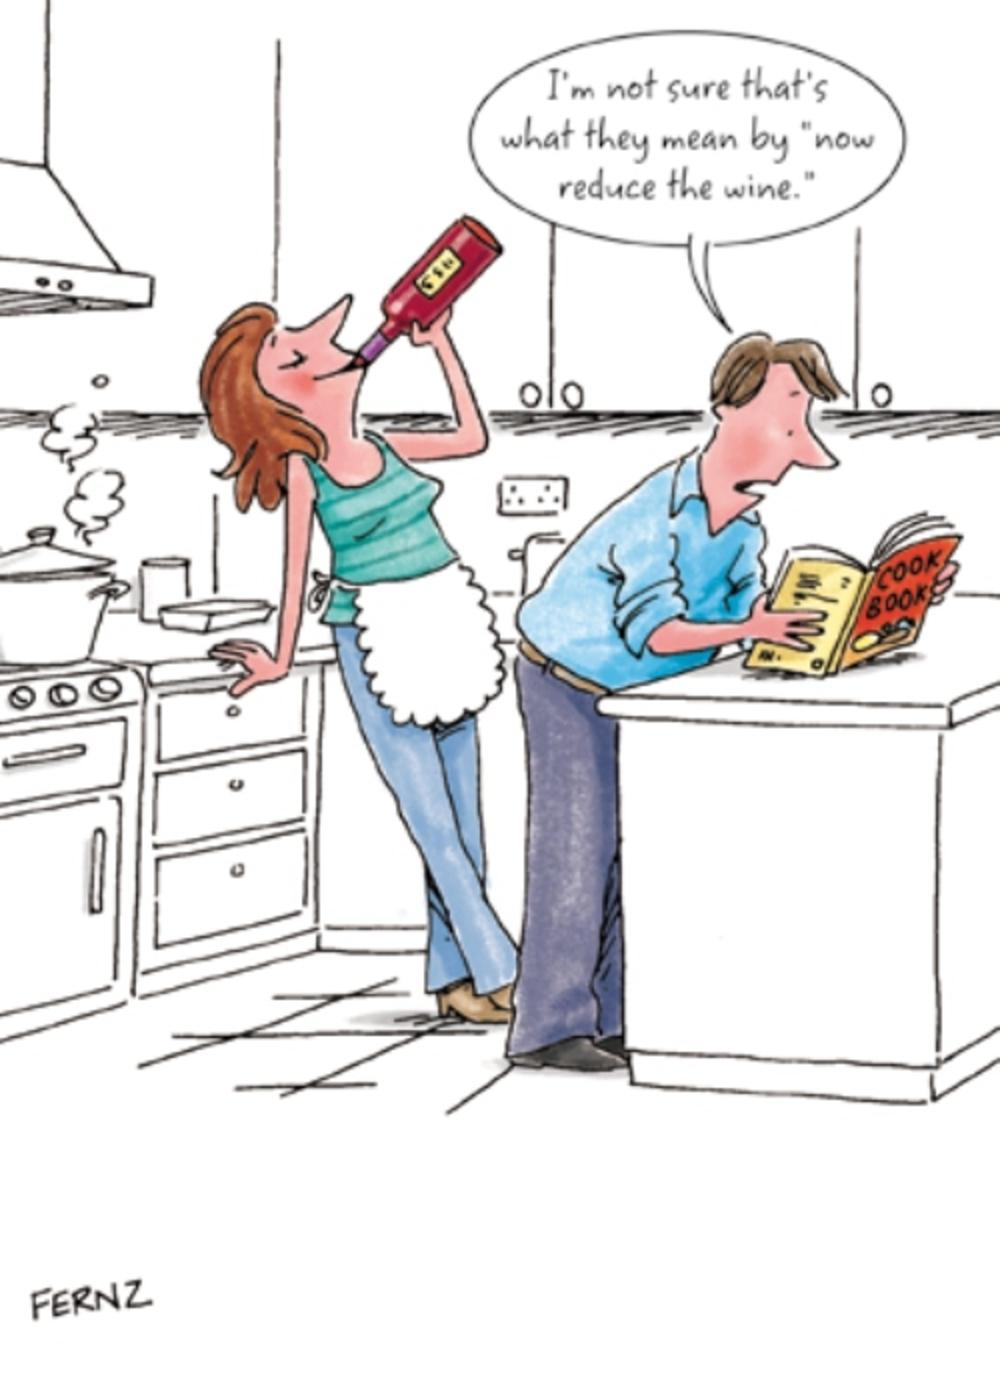 Now Reduce The Wine Funny Birthday Greeting Card | Cards